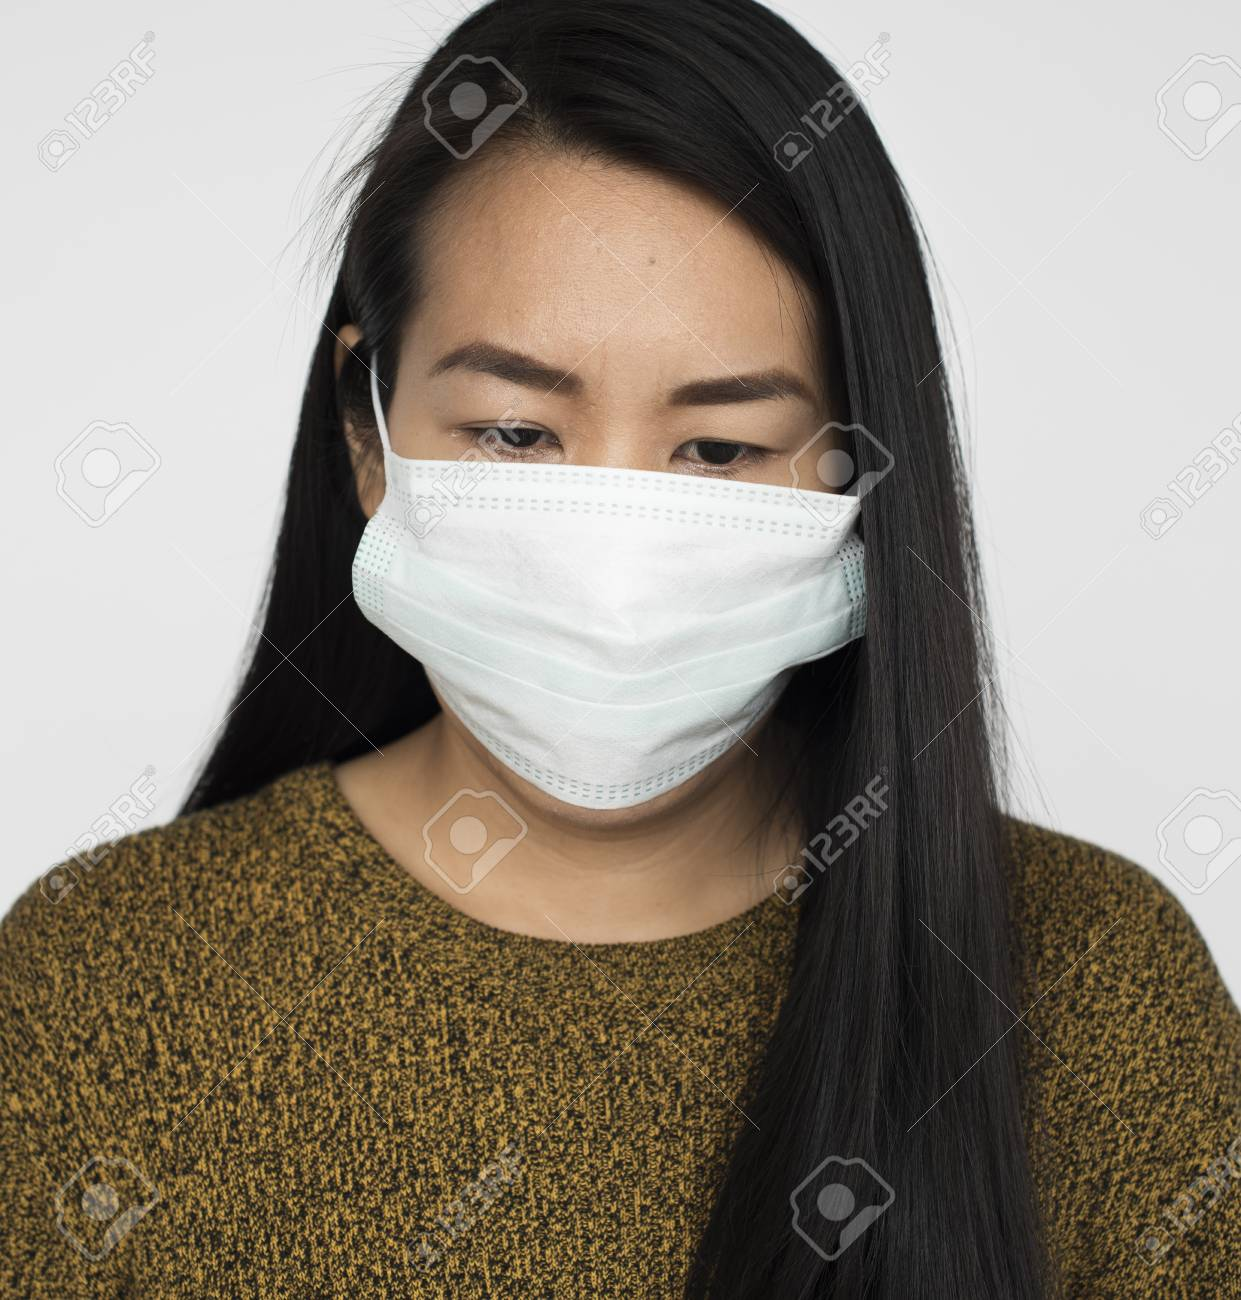 Fever Concept Protective Woman Mask Sickness